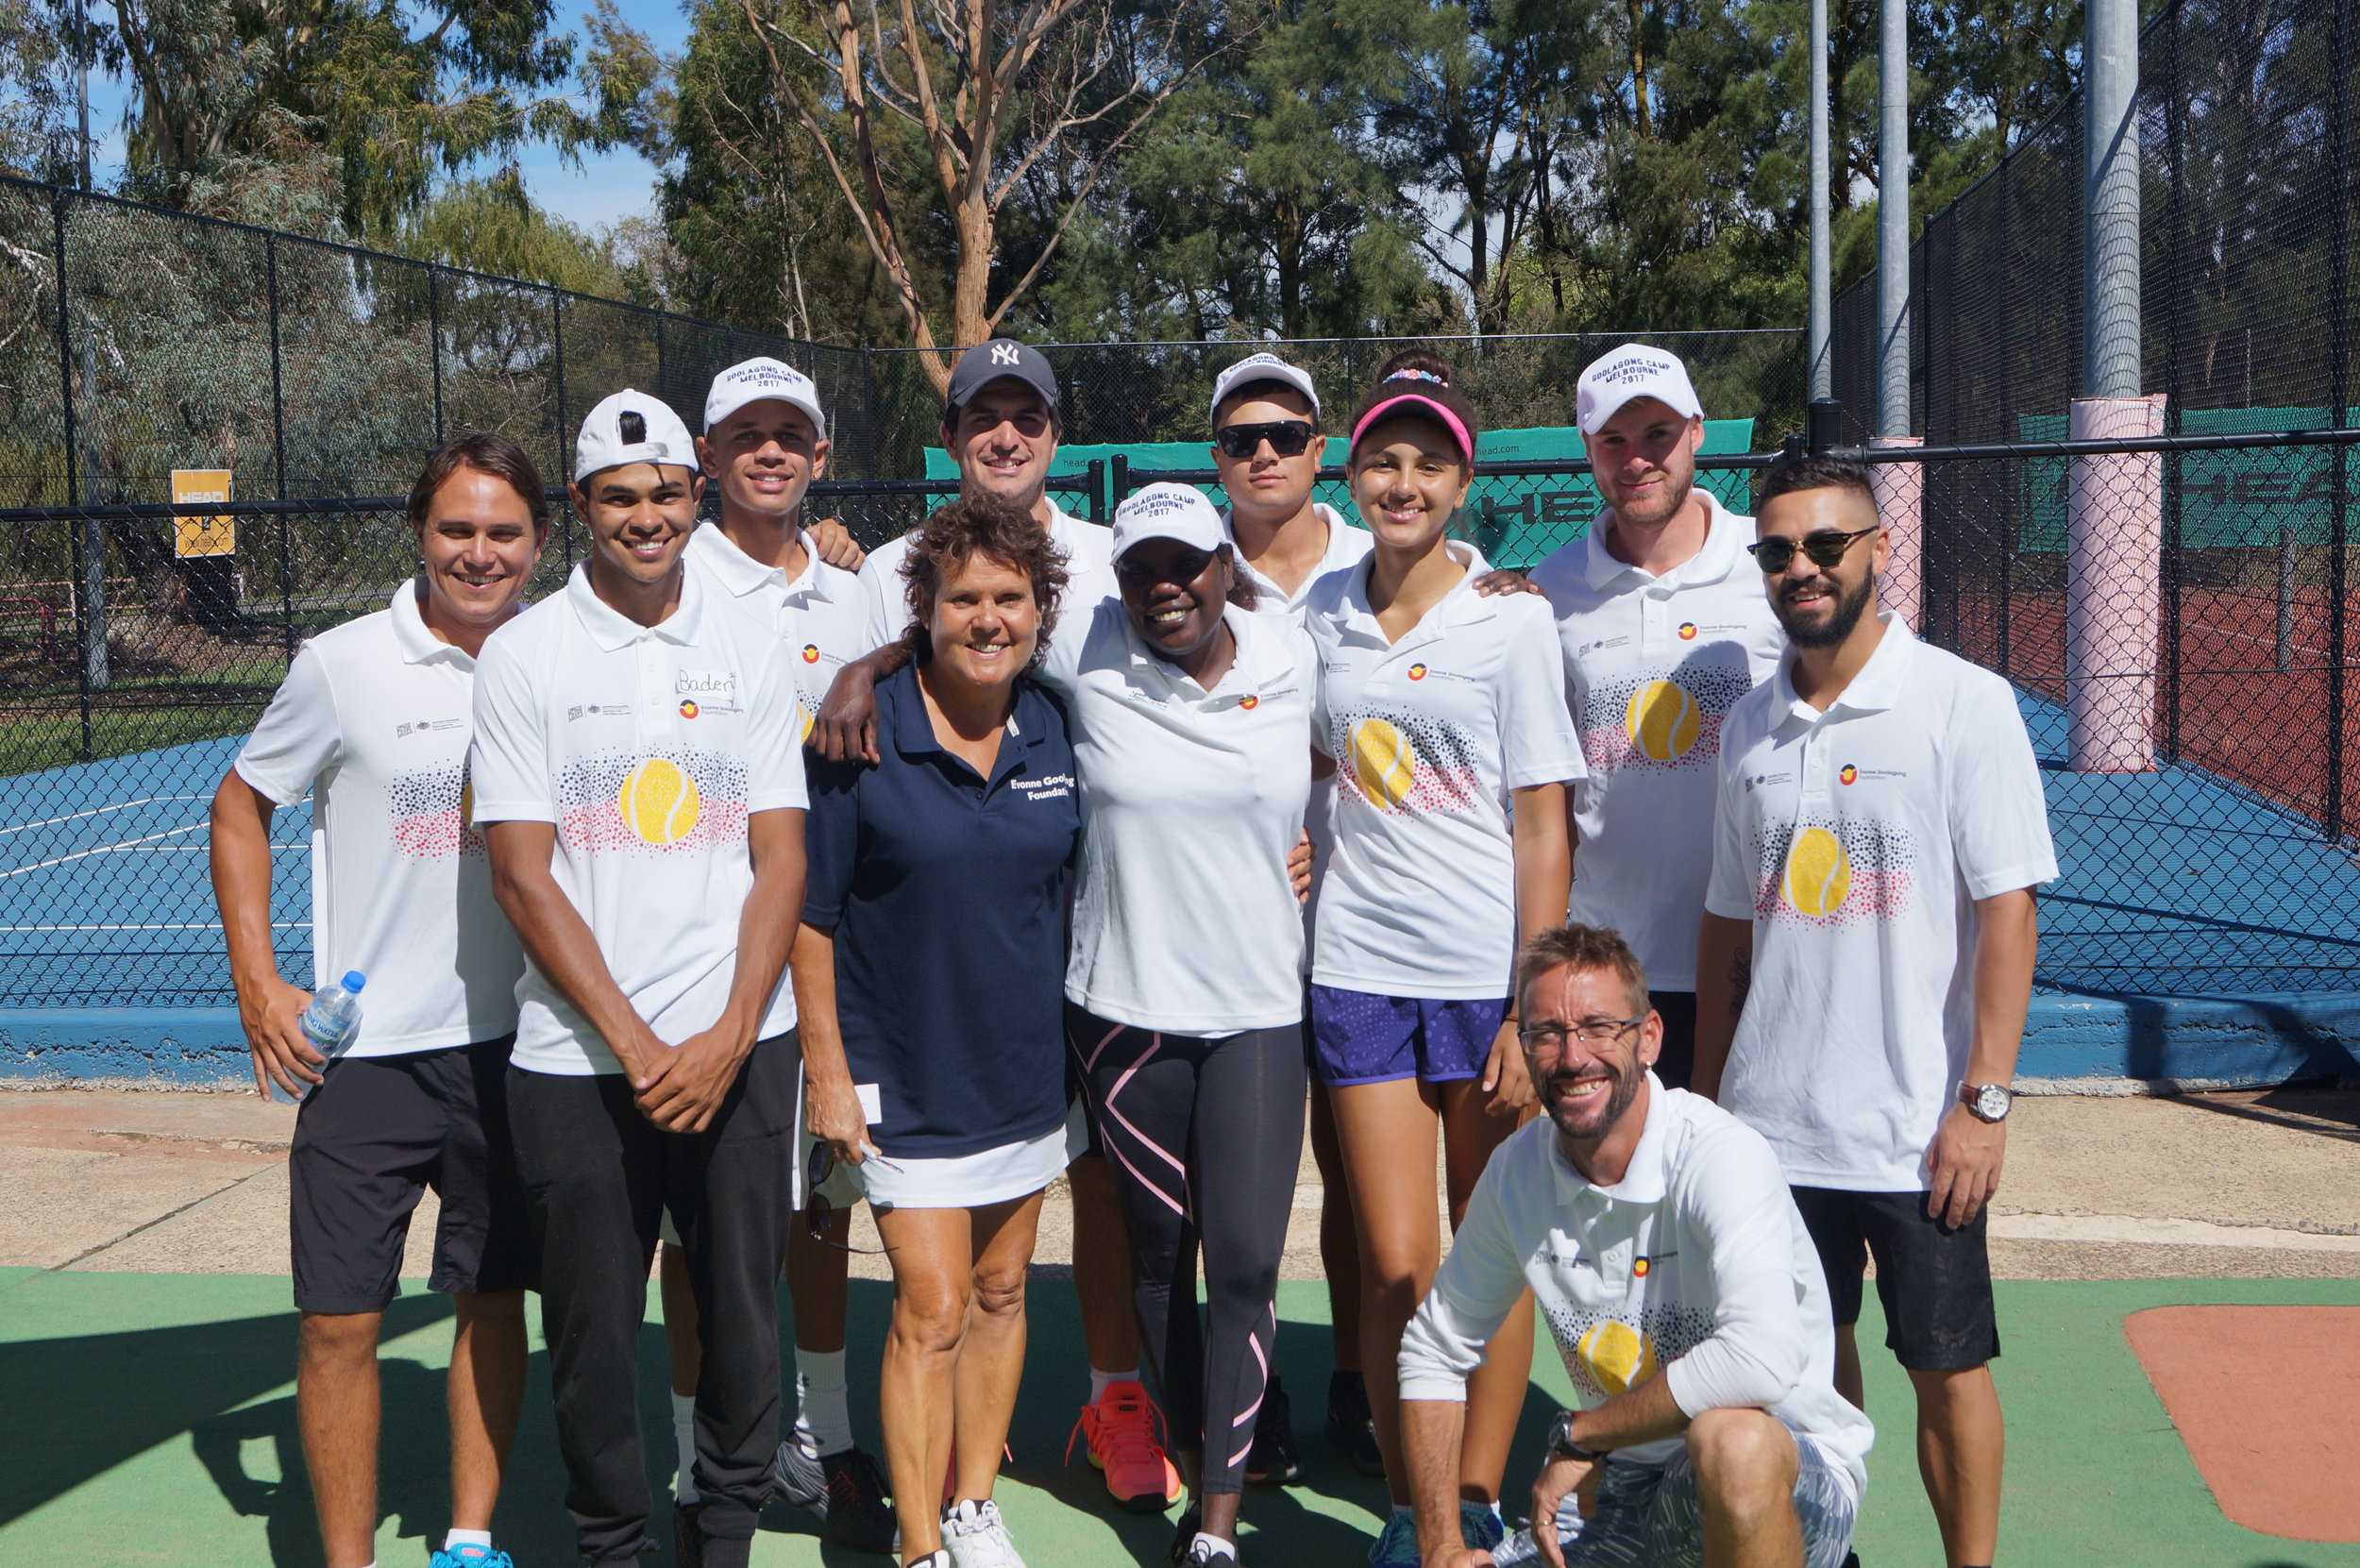 From left Head Coach and Project Co-ordinator Anzac Leidig and his hard working Canberra team, Baden, Tyrell, Evonne, Adam, Tarlina, Dwayne, Tiarna Jarred, Ben and Matt